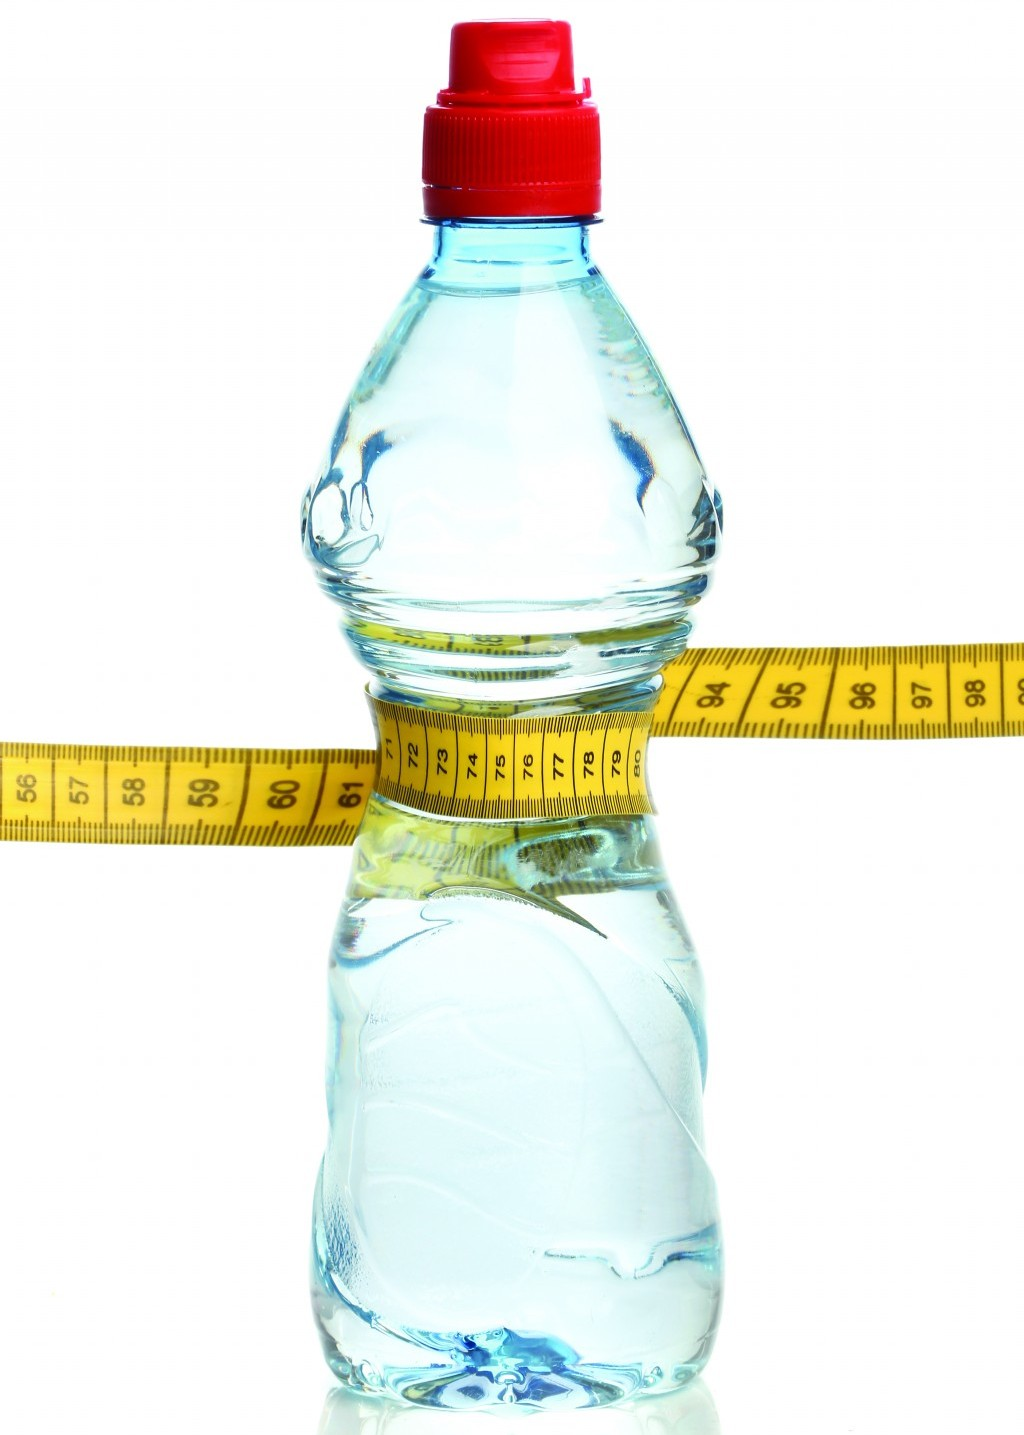 is 5 pounds weight loss noticeable heartbeat